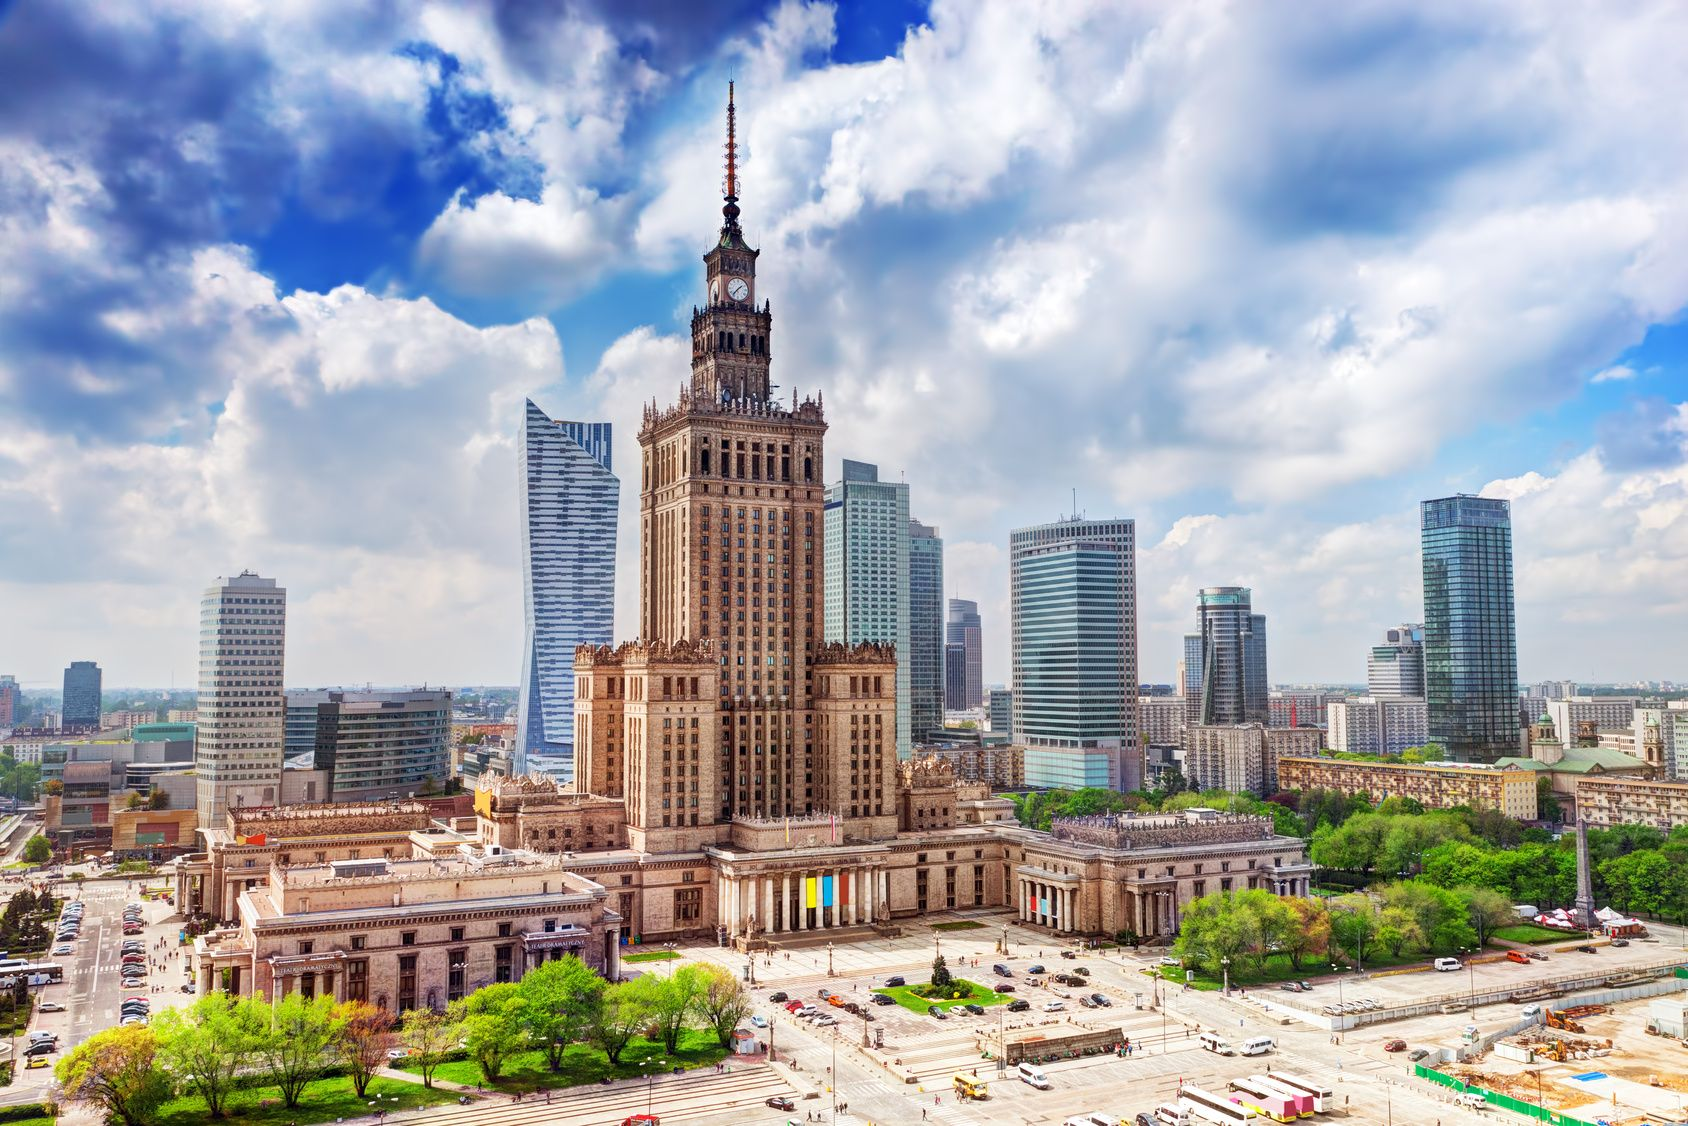 The center of Warsaw